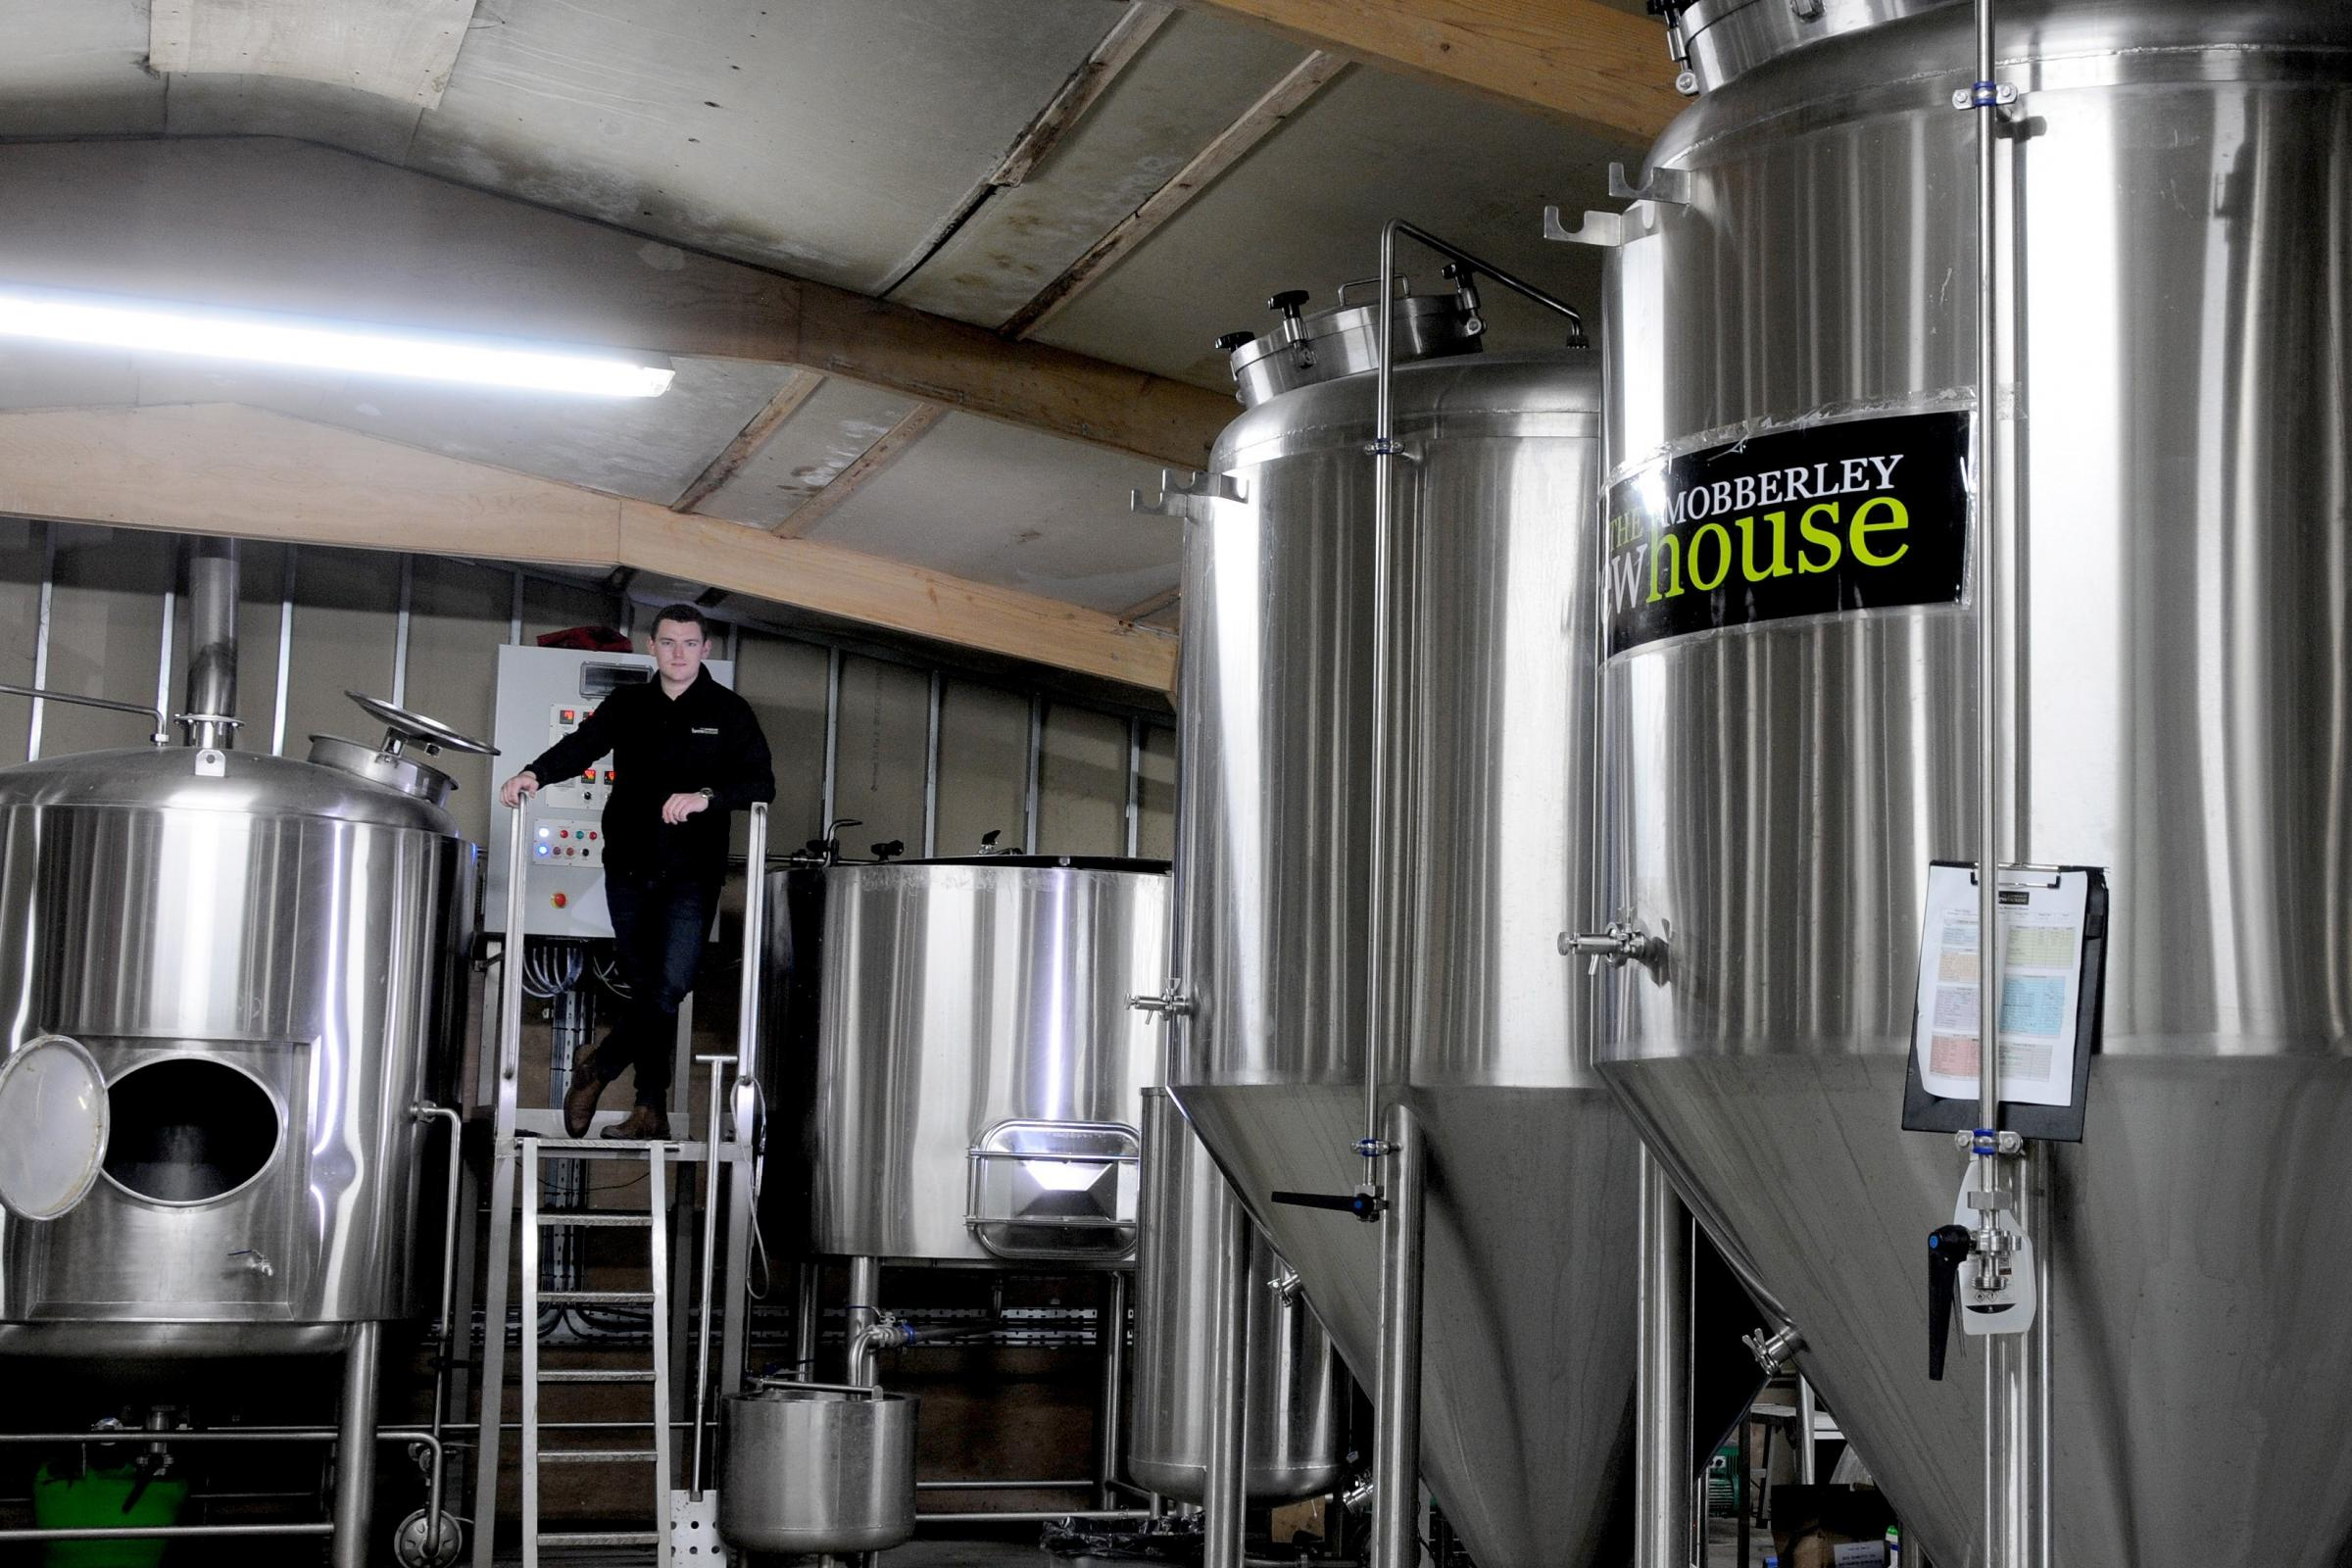 Mobberley Brewhouse are growing their reputation as one of the best craft beer companies in the north west. Theyâre about to introduce a canning line.